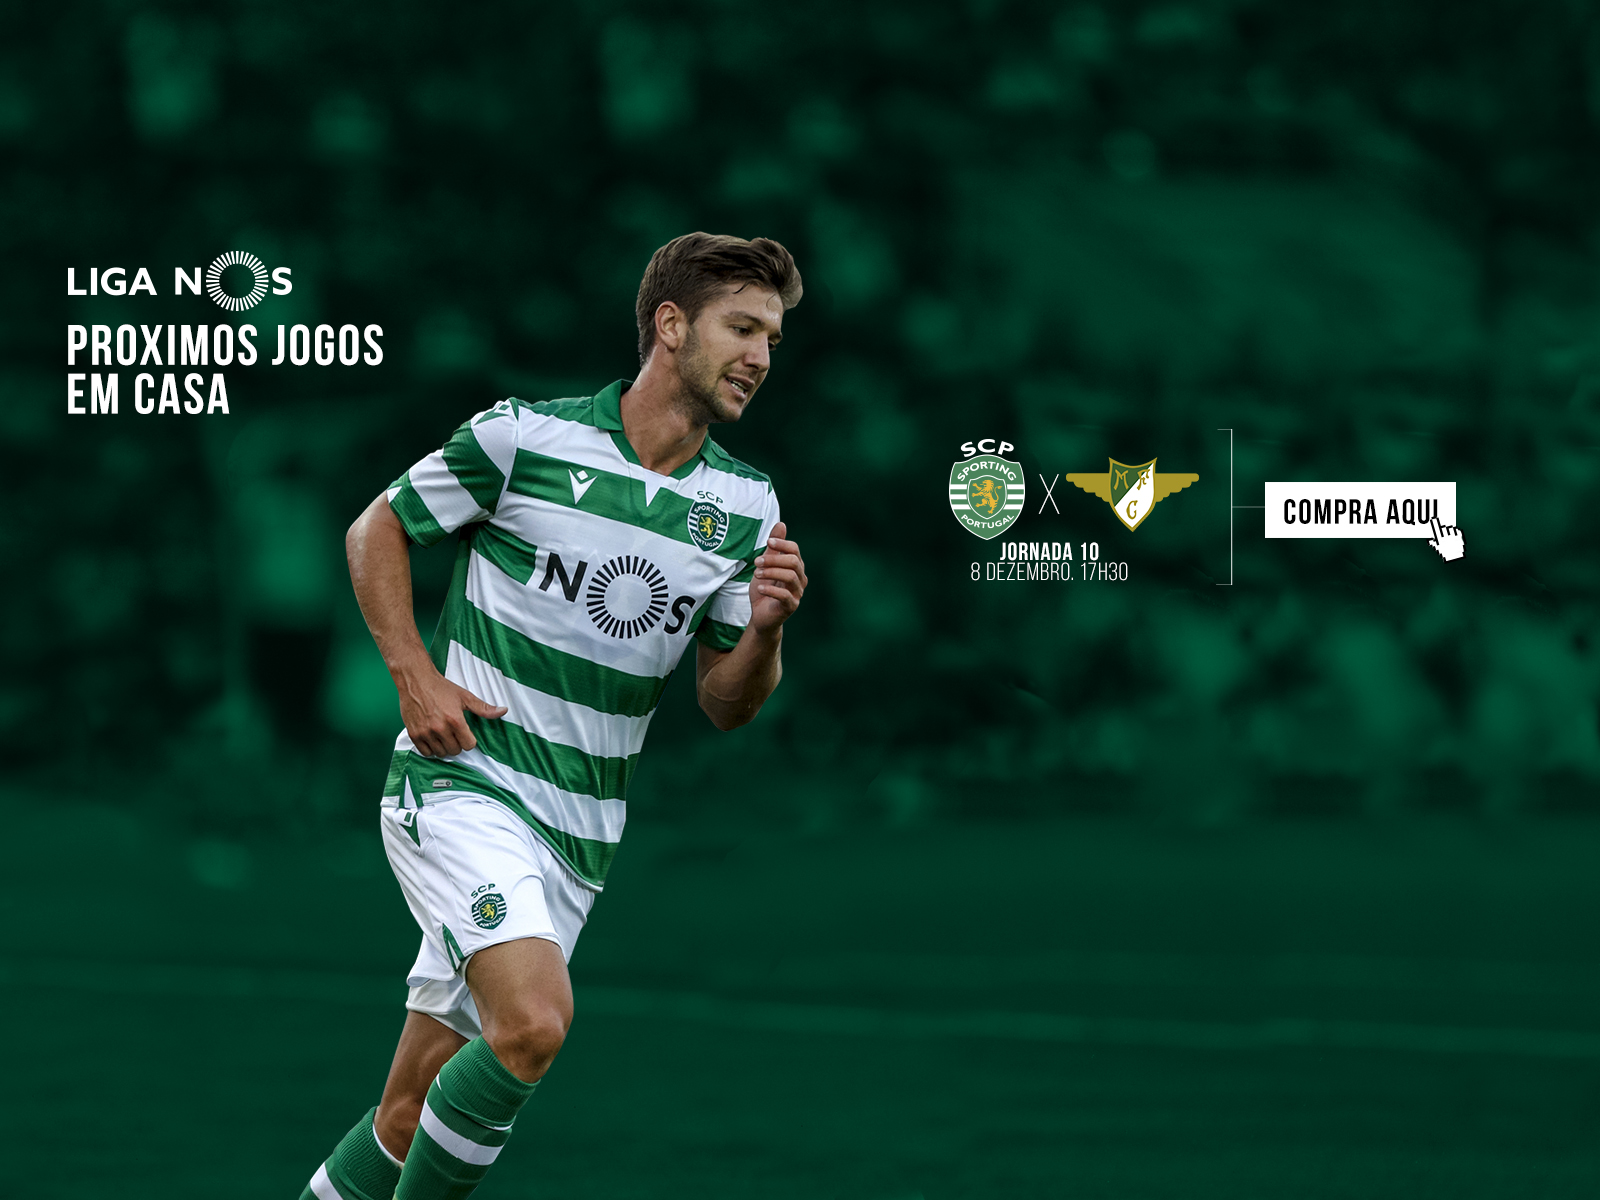 https://scpconteudos.pt/sites/default/files/revslider/image/Banner_HomePage_Pro%CC%81ximos%20Jogos.jpg